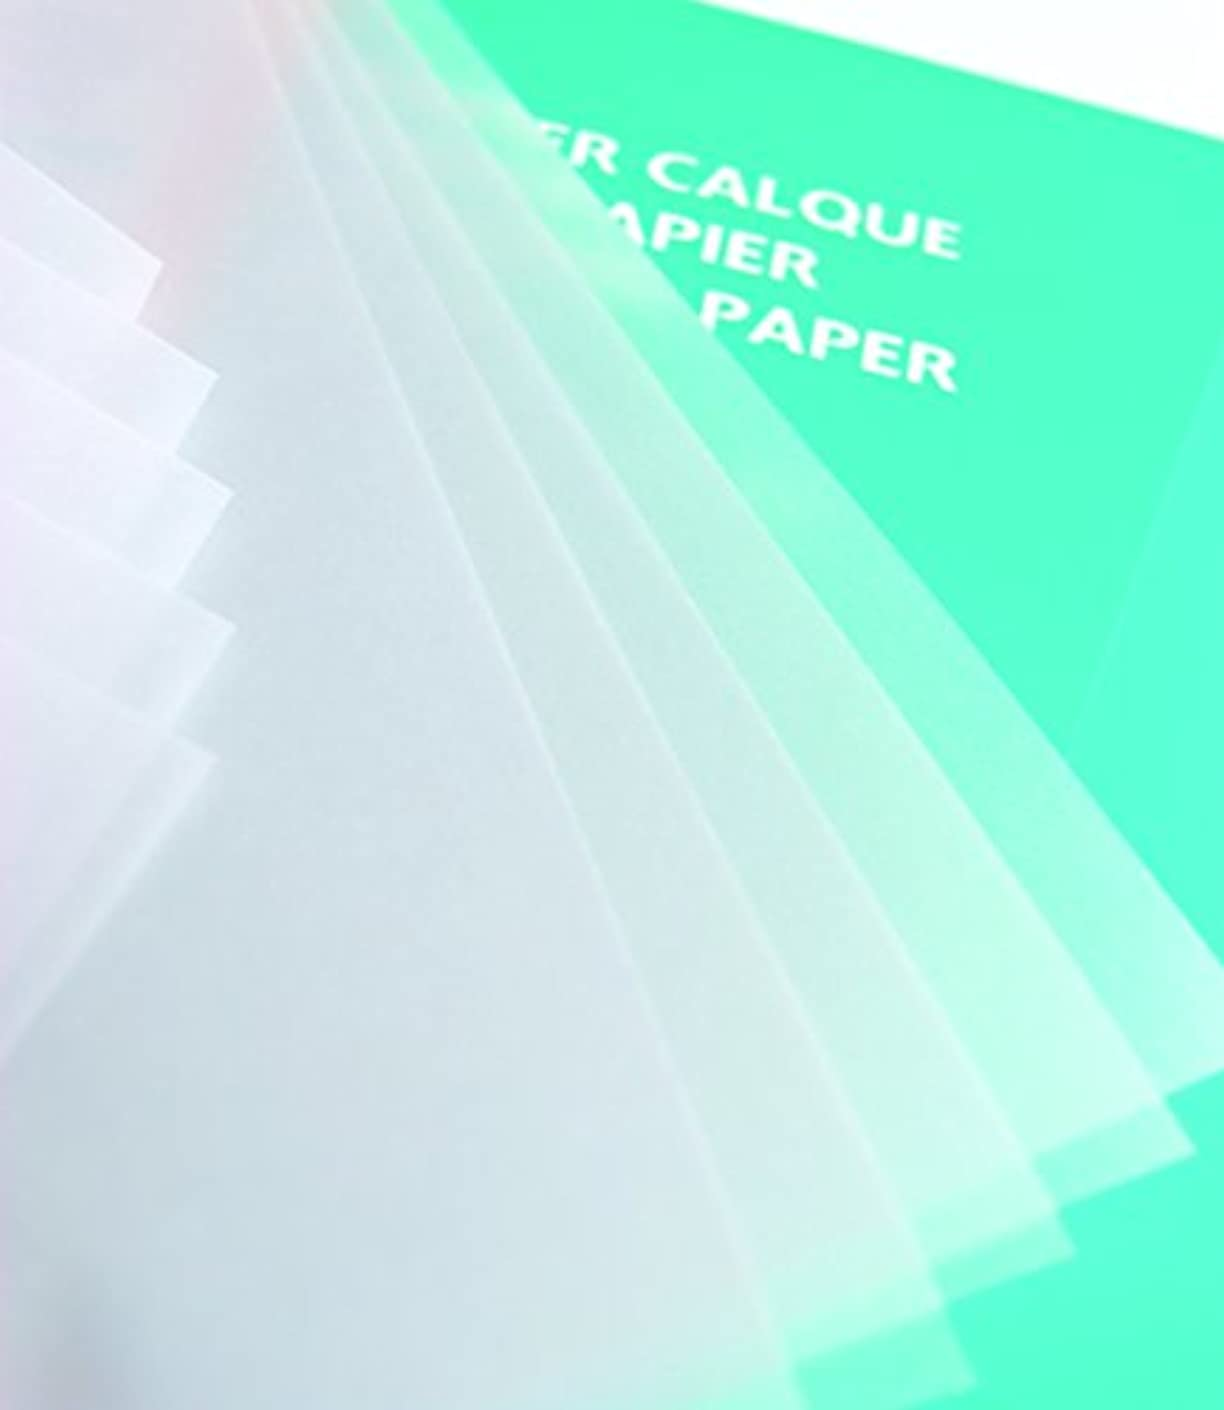 Clairefontaine A1 Tracing Paper, 90/95 g, 10 Sheets